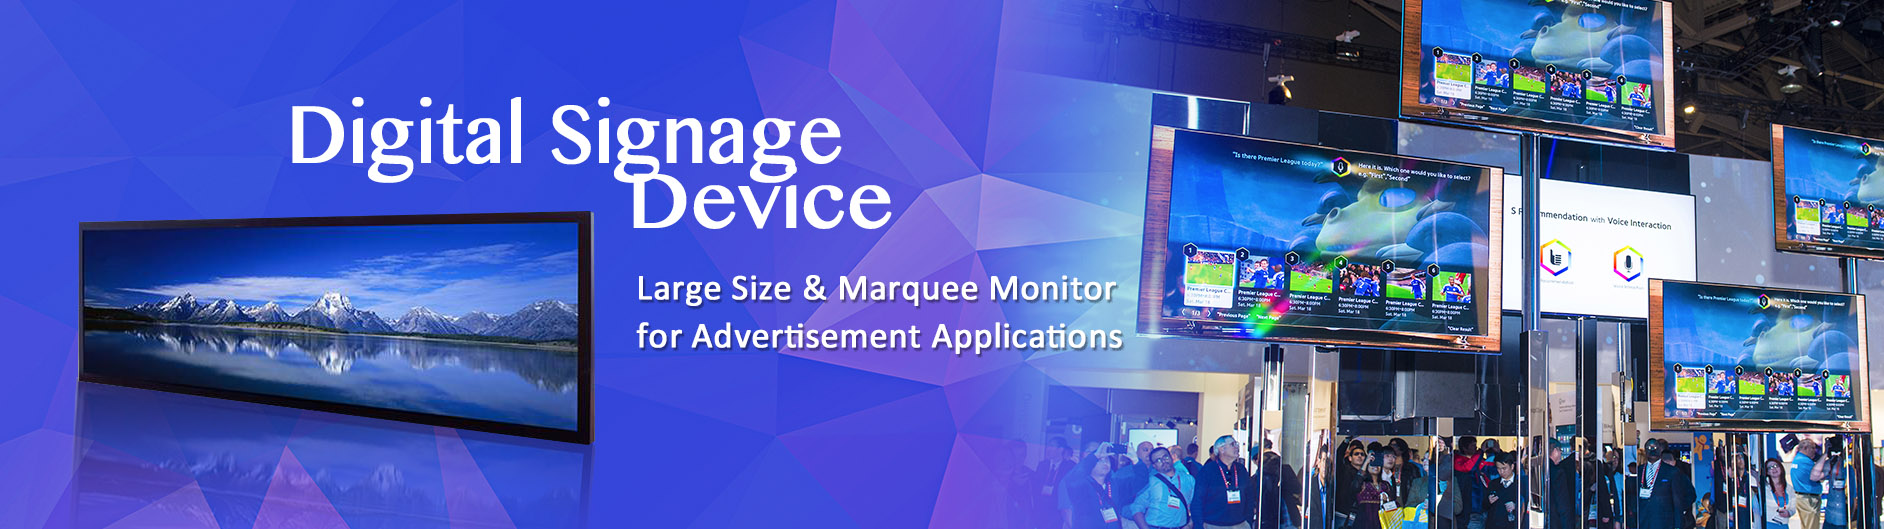 Digital Signage Device